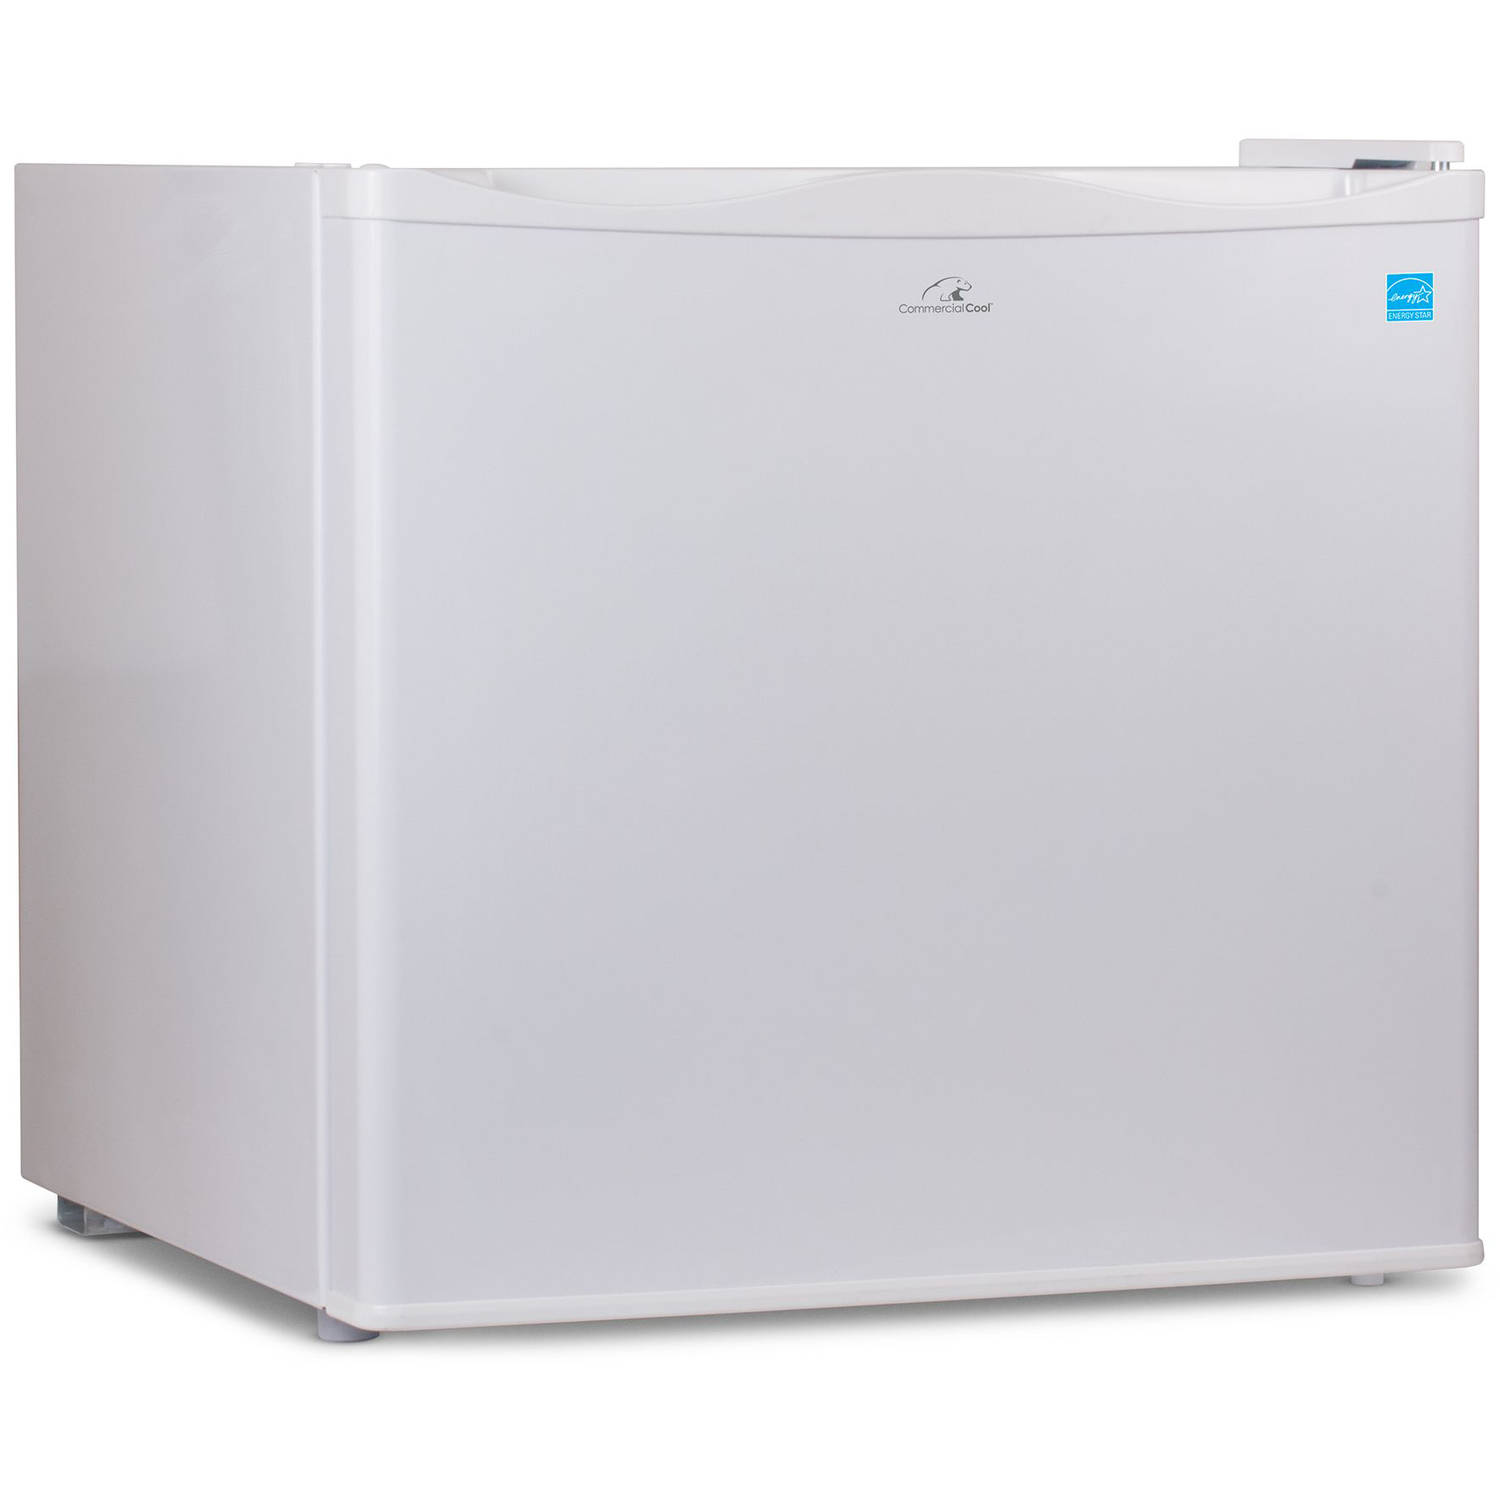 commercial cool 12 cu ft upright freezer white - Upright Freezers